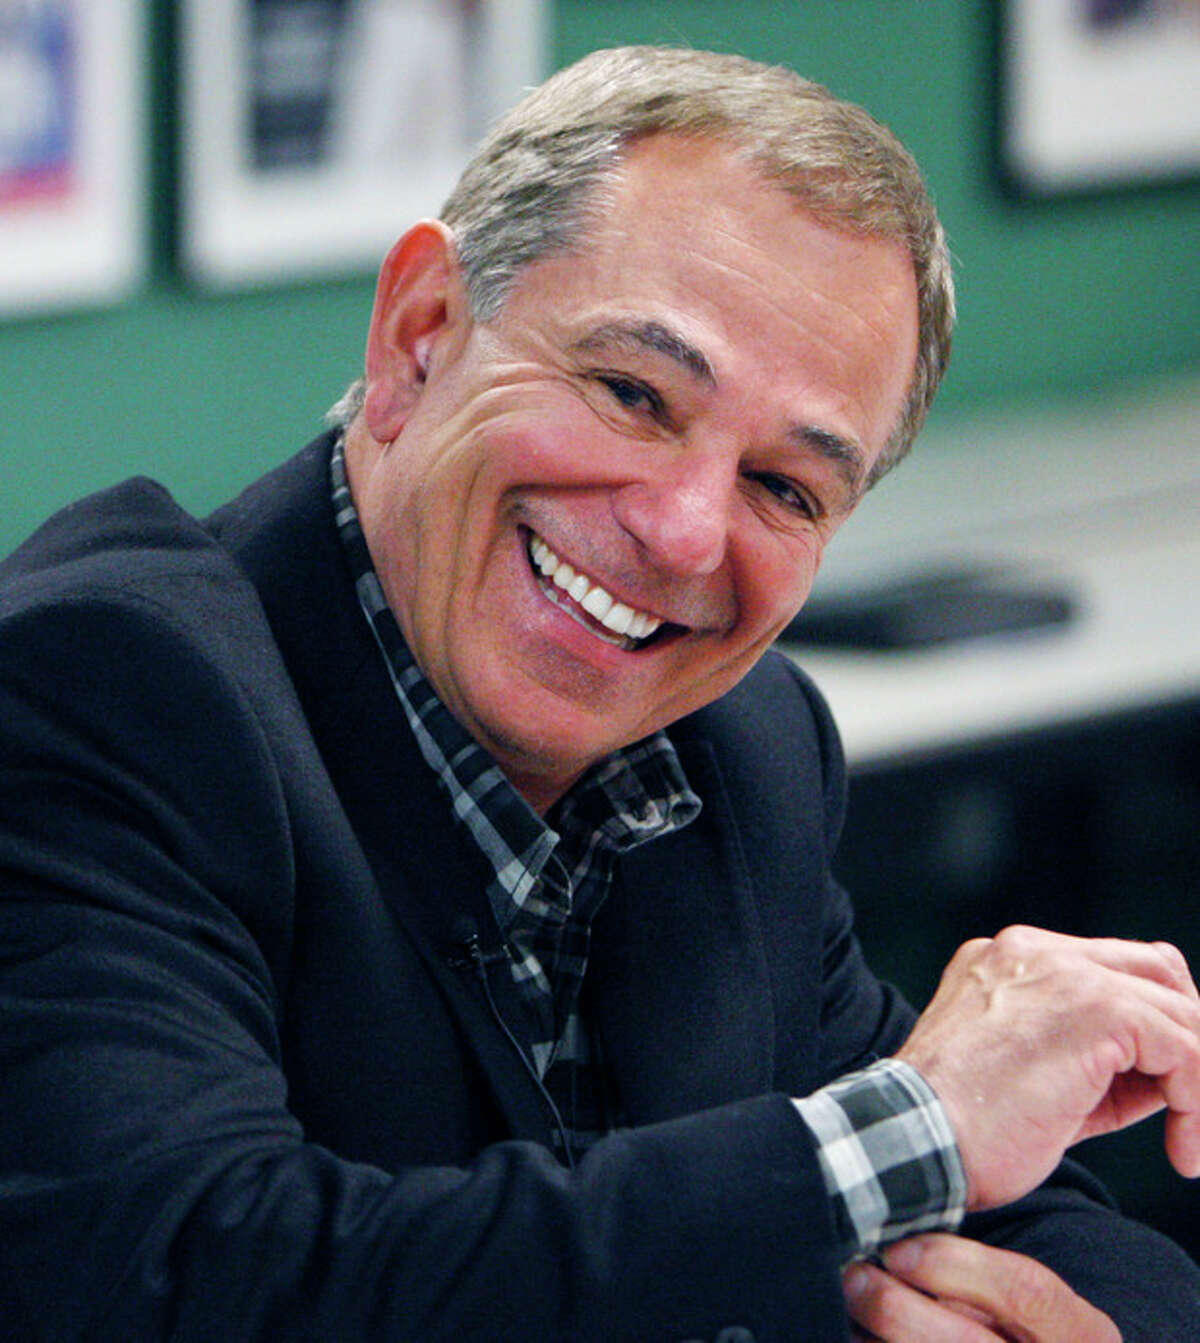 FILE-This Nov. 21, 2011 file photo shows ESPN analyst Bobby Valentine smiling as he answers questions from reporters following his interview for the vacant Boston Red Sox manager position, at Fenway Park in Boston. A person familiar with the decision says the Boston Red Sox have chosen Bobby Valentine to be their next manager and were working to complete a contract. The person spoke to The Associated Press on condition of anonymity Tuesday Nov. 29, 2011 because no announcement had been made. (AP Photo/Bizuayehu Tesfaye, File)